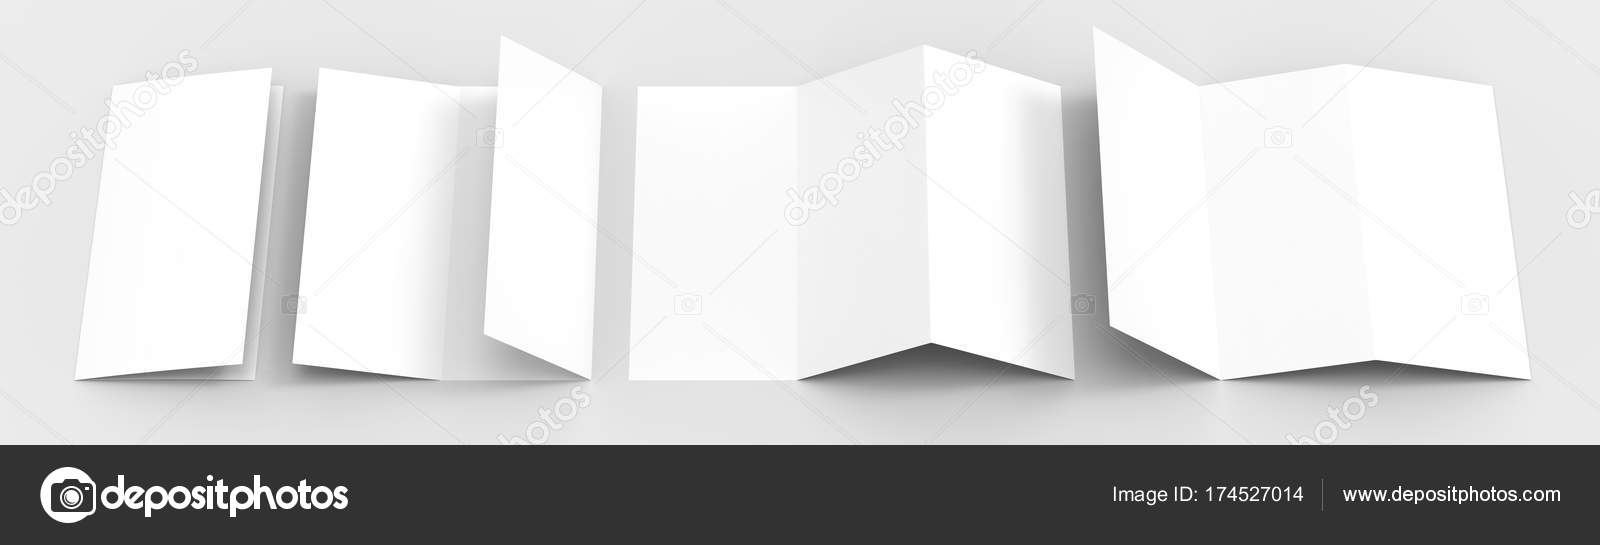 a4 blank trifold paper brochure mock up on soft gray background